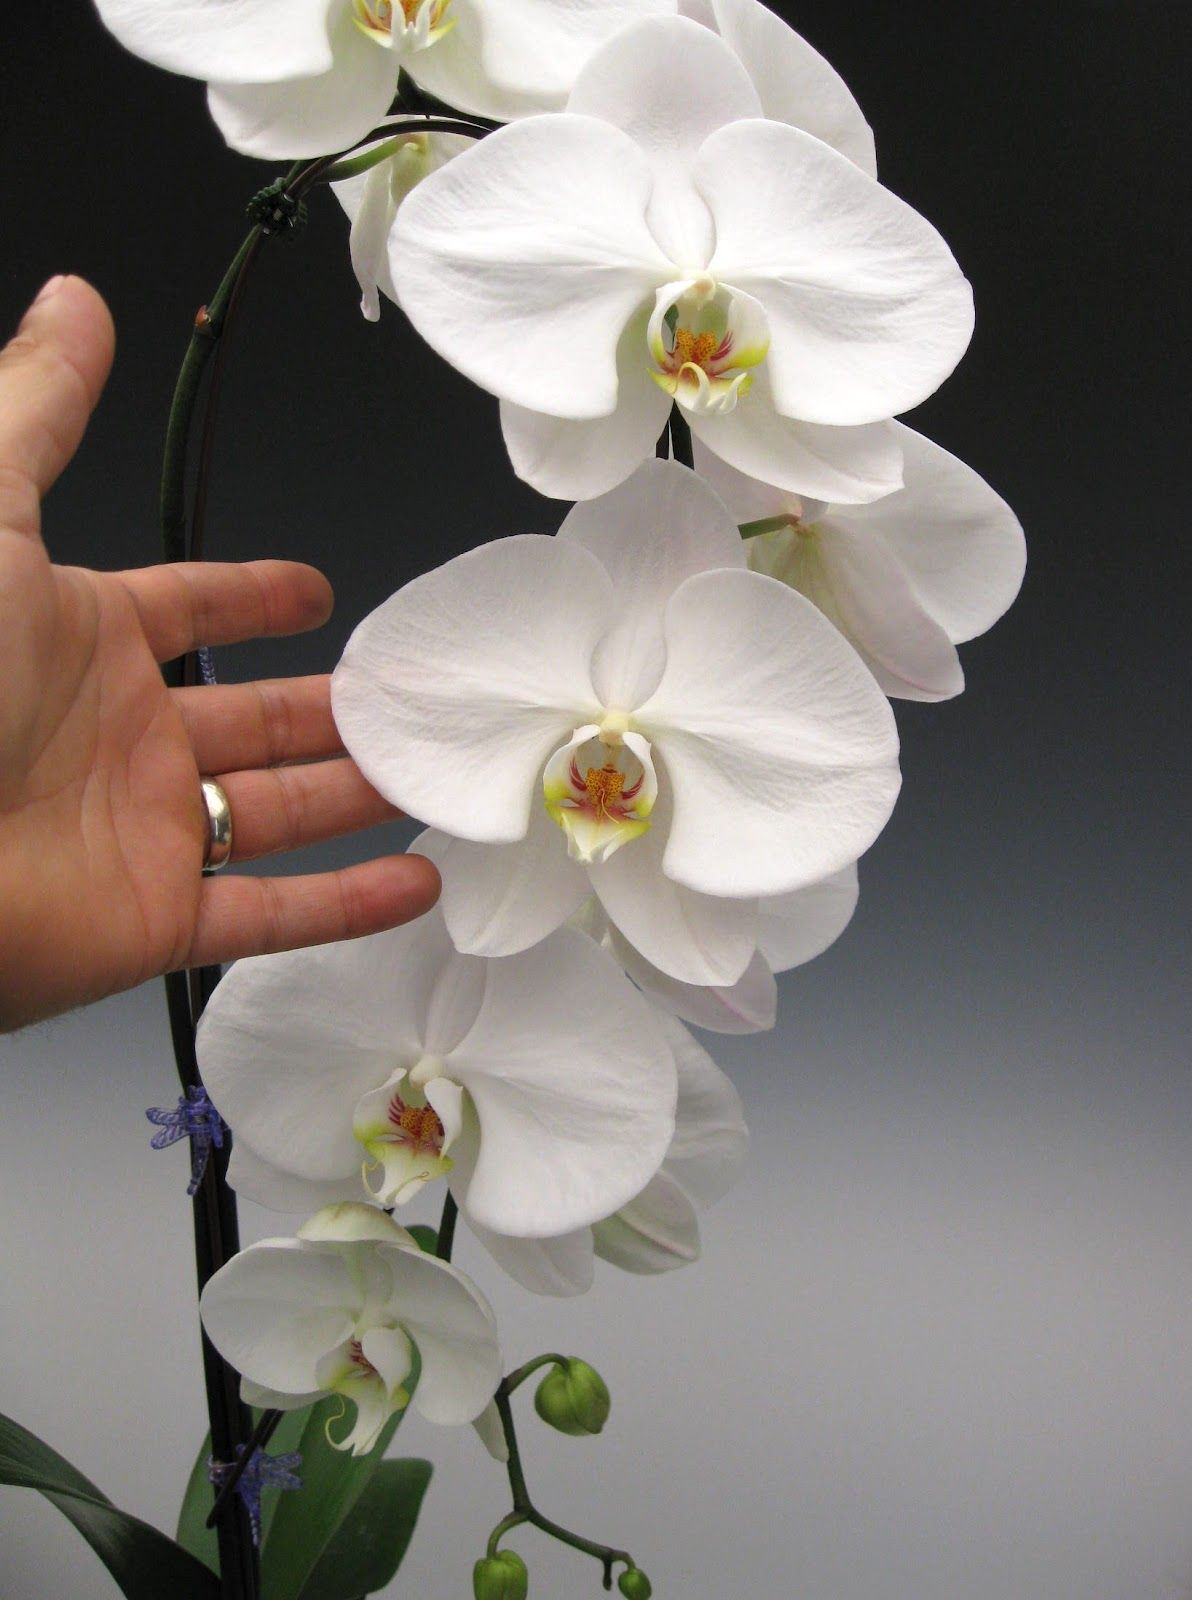 91c5794182fa3bfbf60de37cffa2fb3a - How To Get An Orchid To Bloom A Second Time